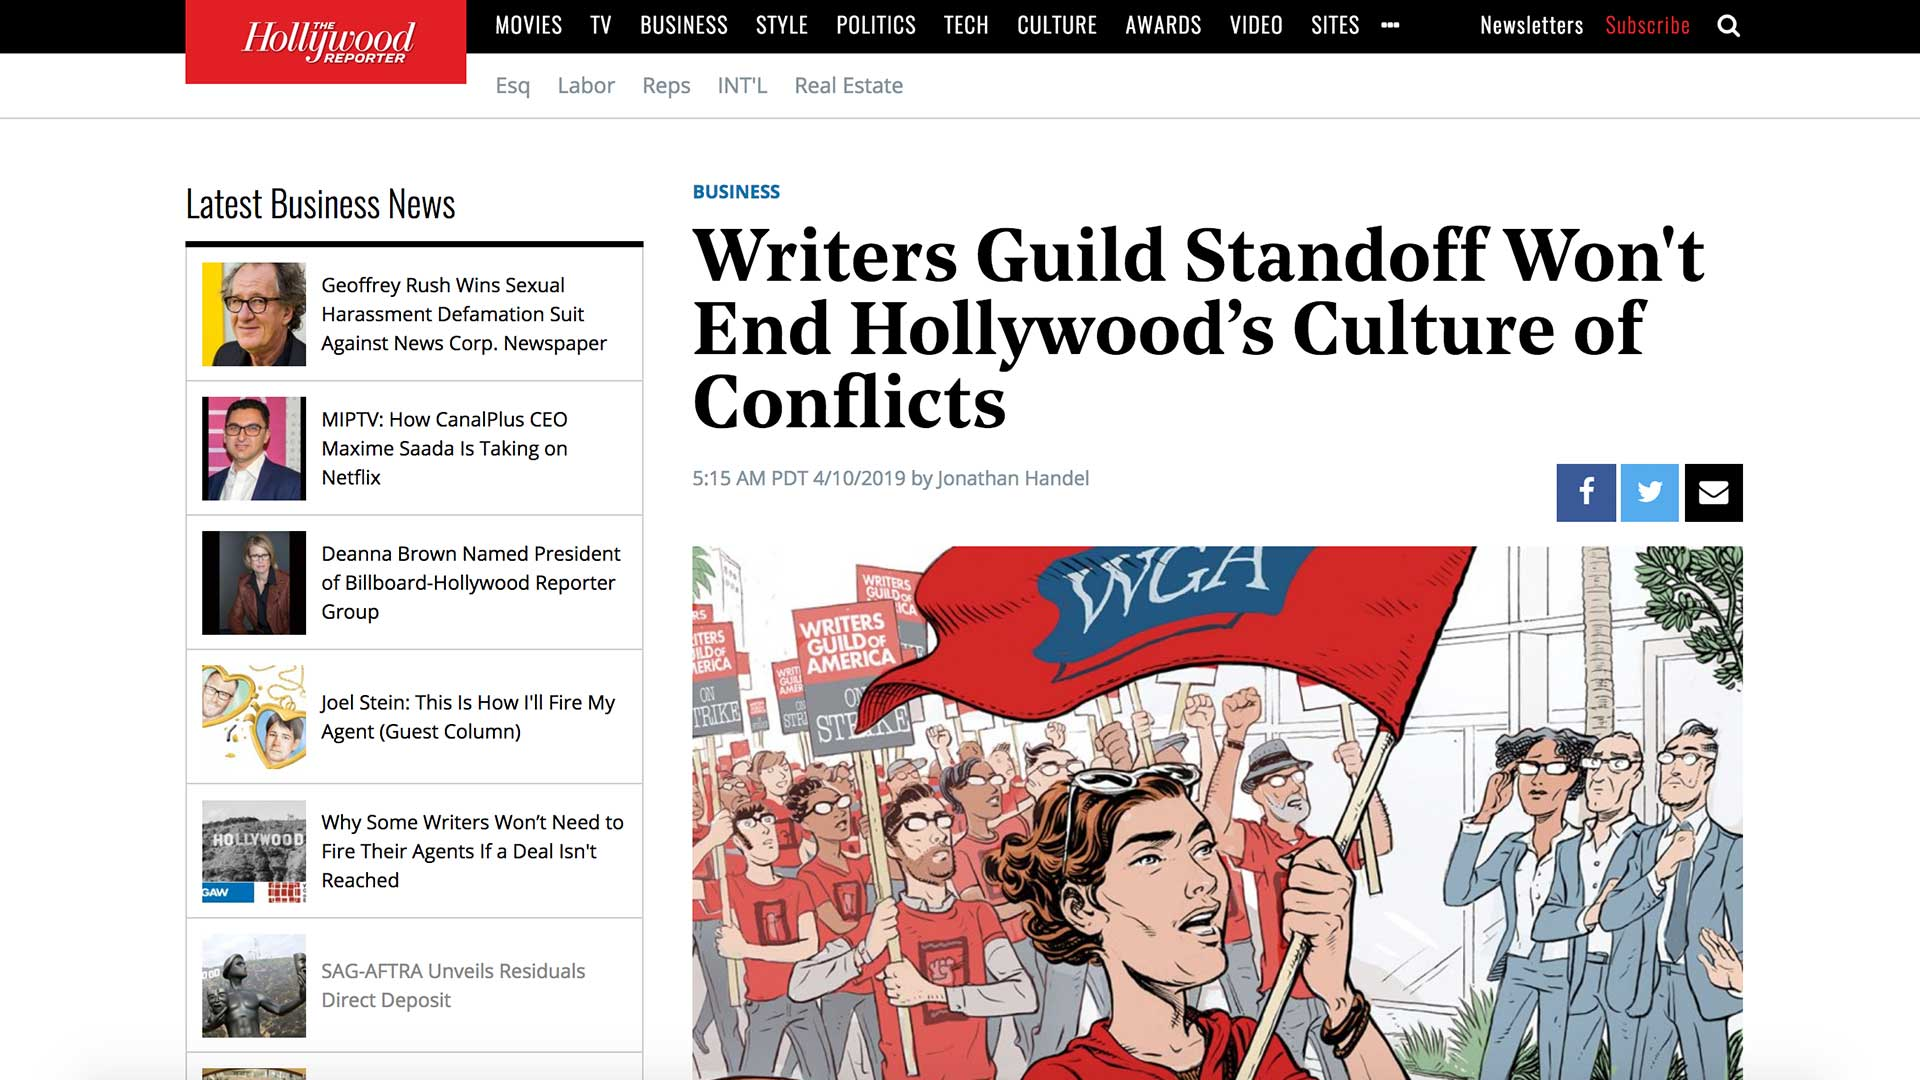 Fairness Rocks News Writers Guild Standoff Won't End Hollywood's Culture of Conflicts